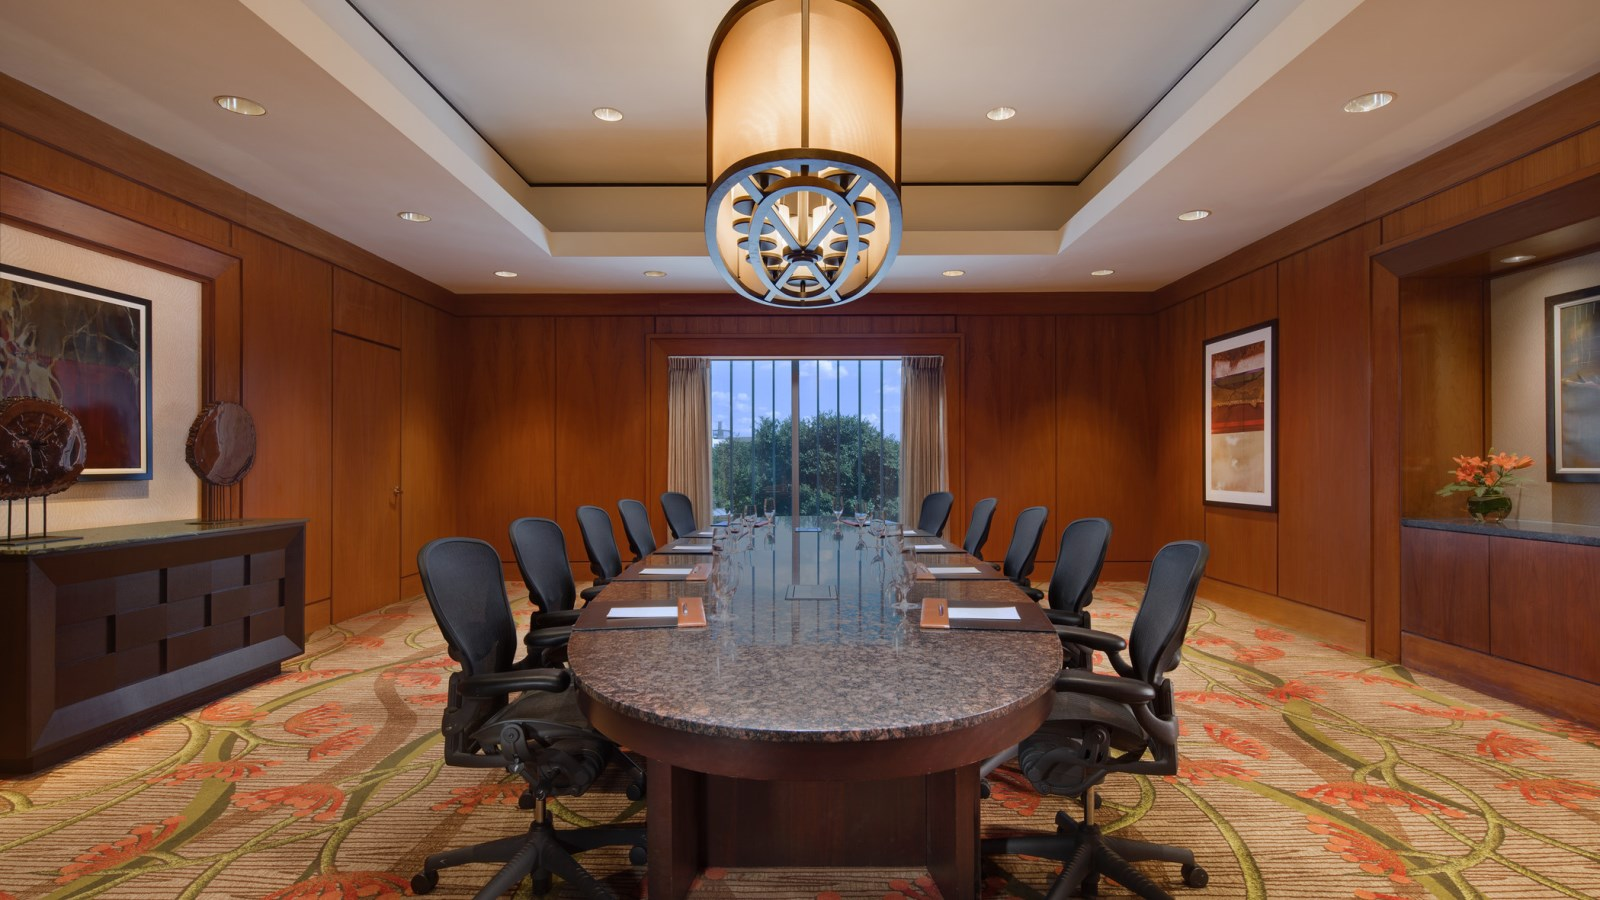 Sheraton Dallas Hotel - Small Meetings